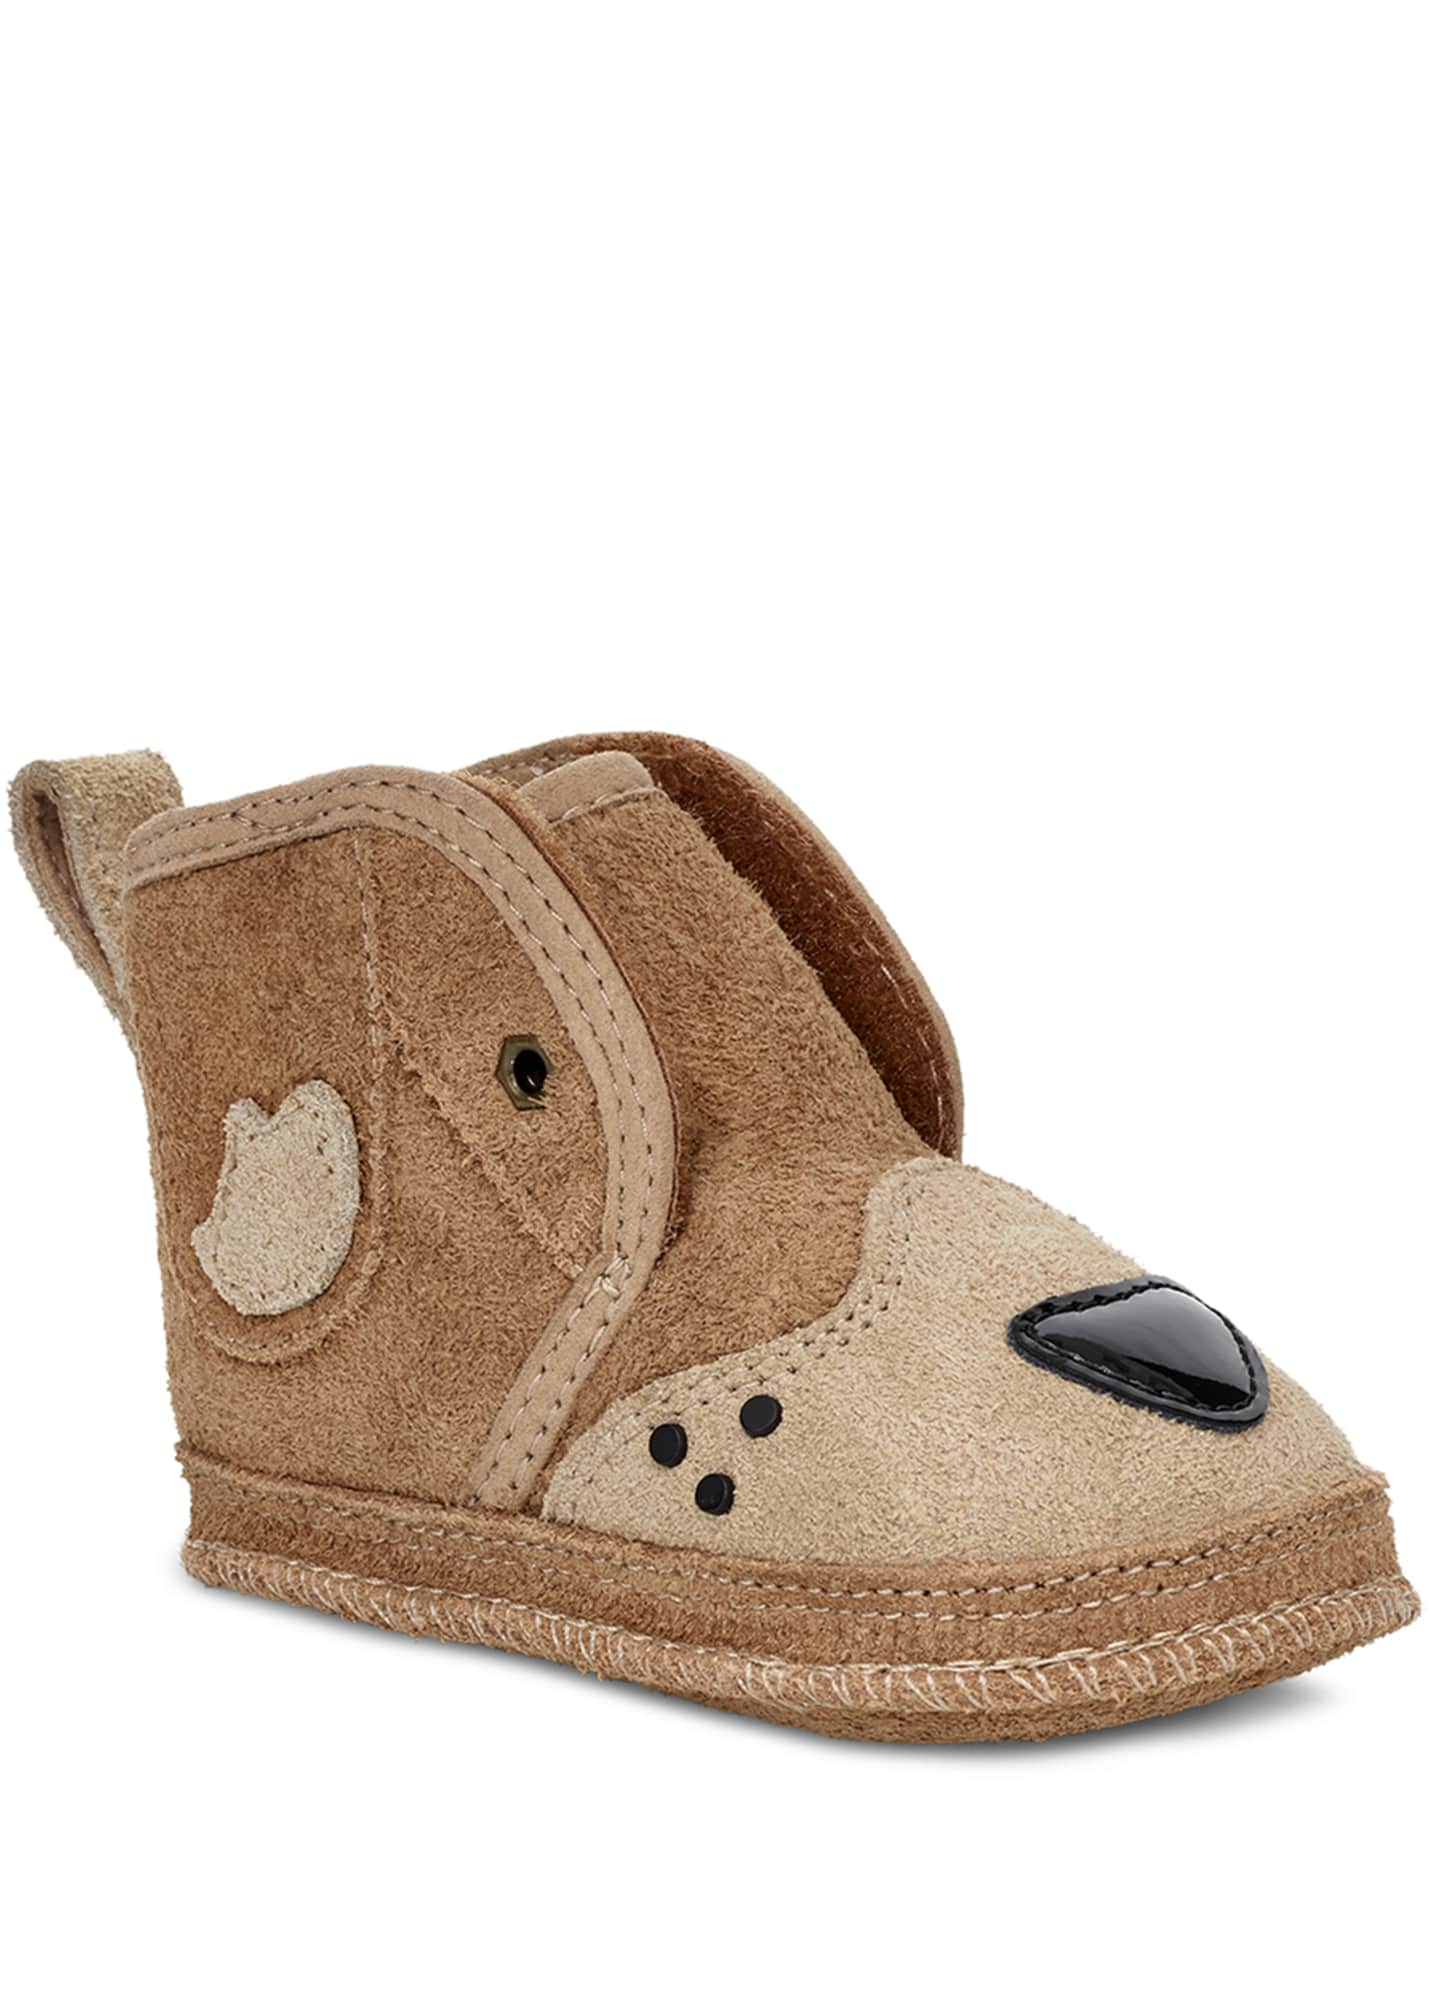 UGG Happee Neumel Suede Boots, Baby